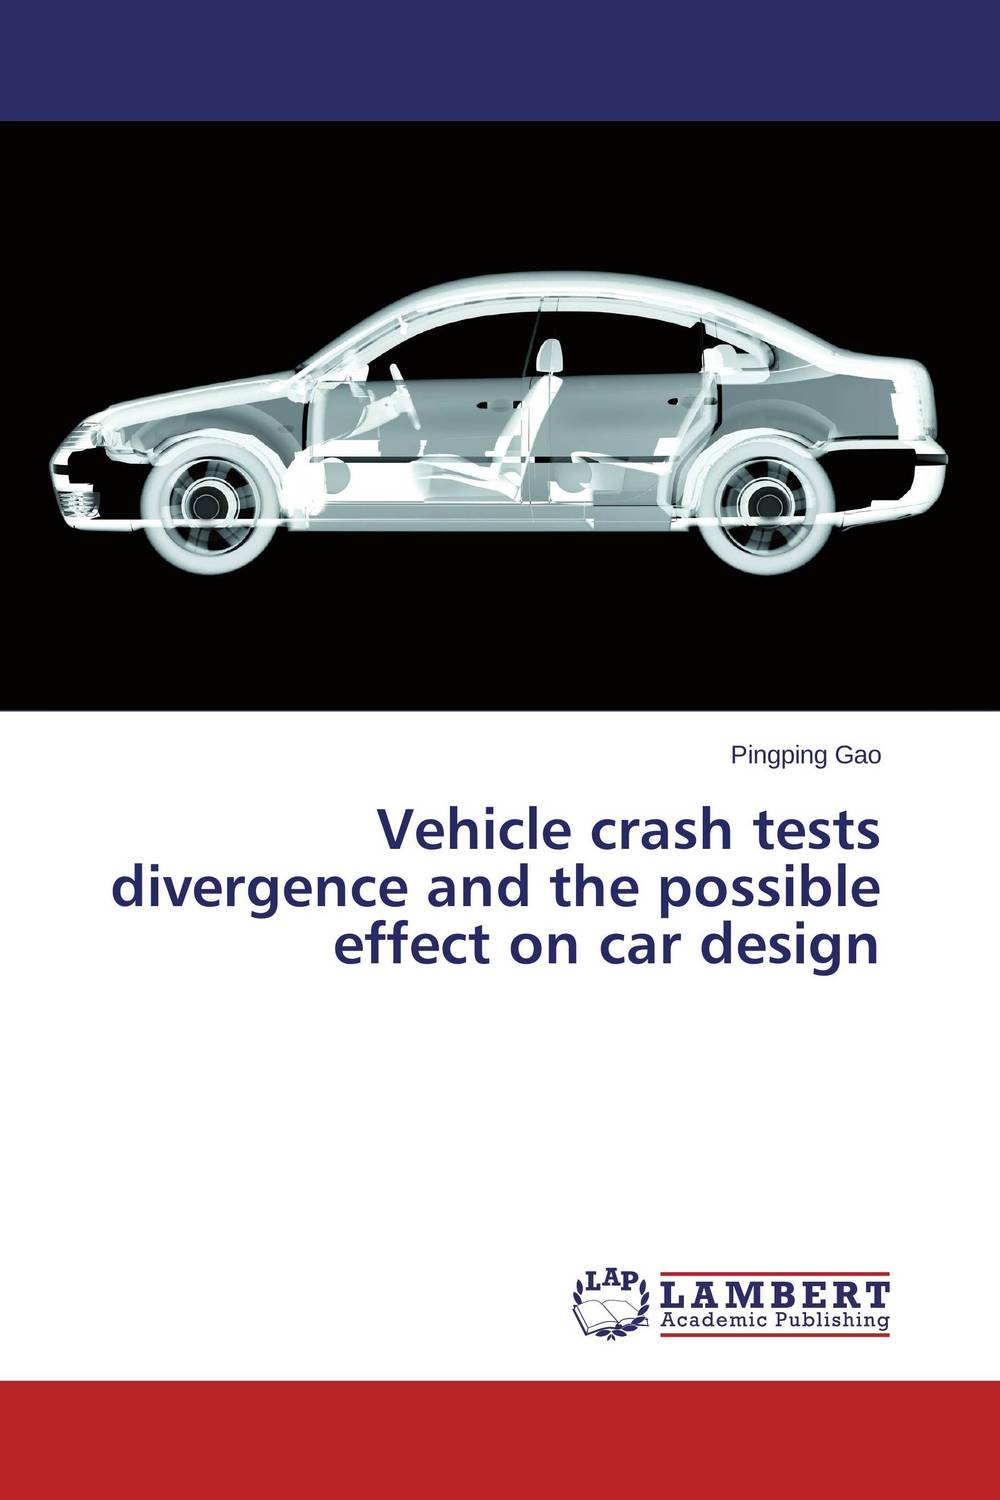 Vehicle crash tests divergence and the possible effect on car design crash romeo crash romeo give me the clap